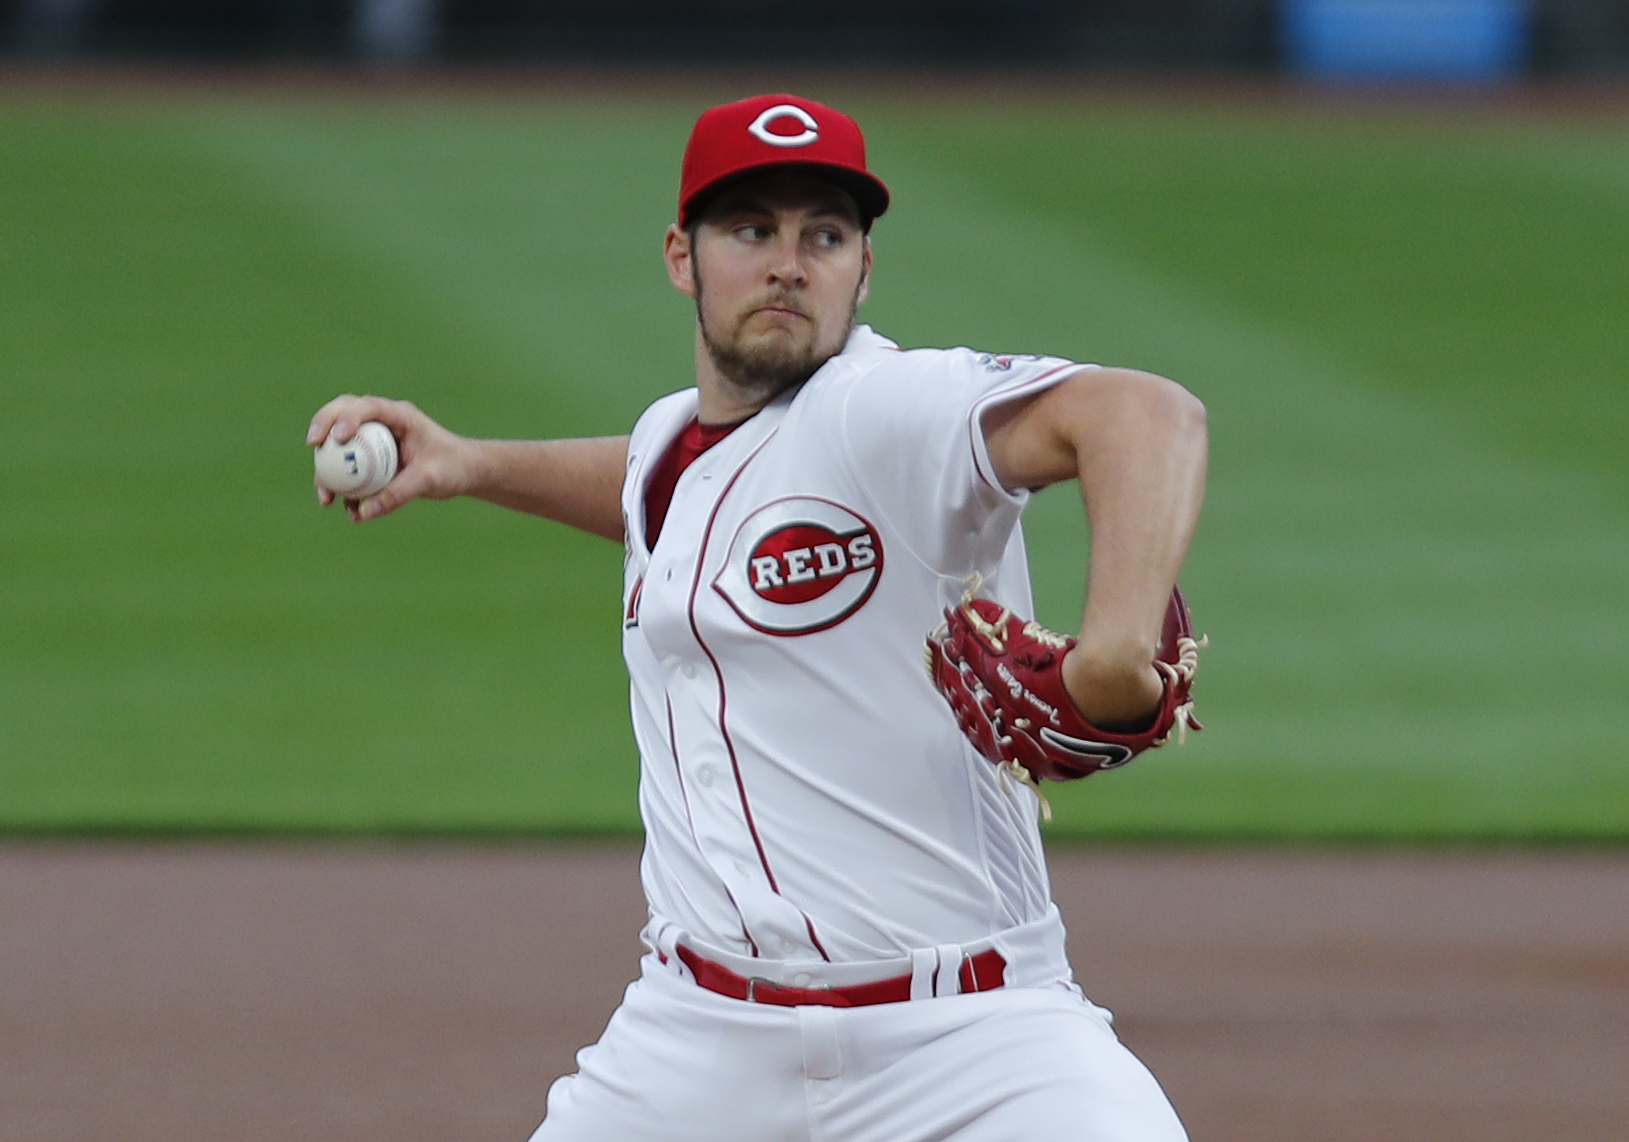 Cincinnati Reds starting pitcher Trevor Bauer (27) throws against the Milwaukee Brewers during the first inning at Great American Ball Park.